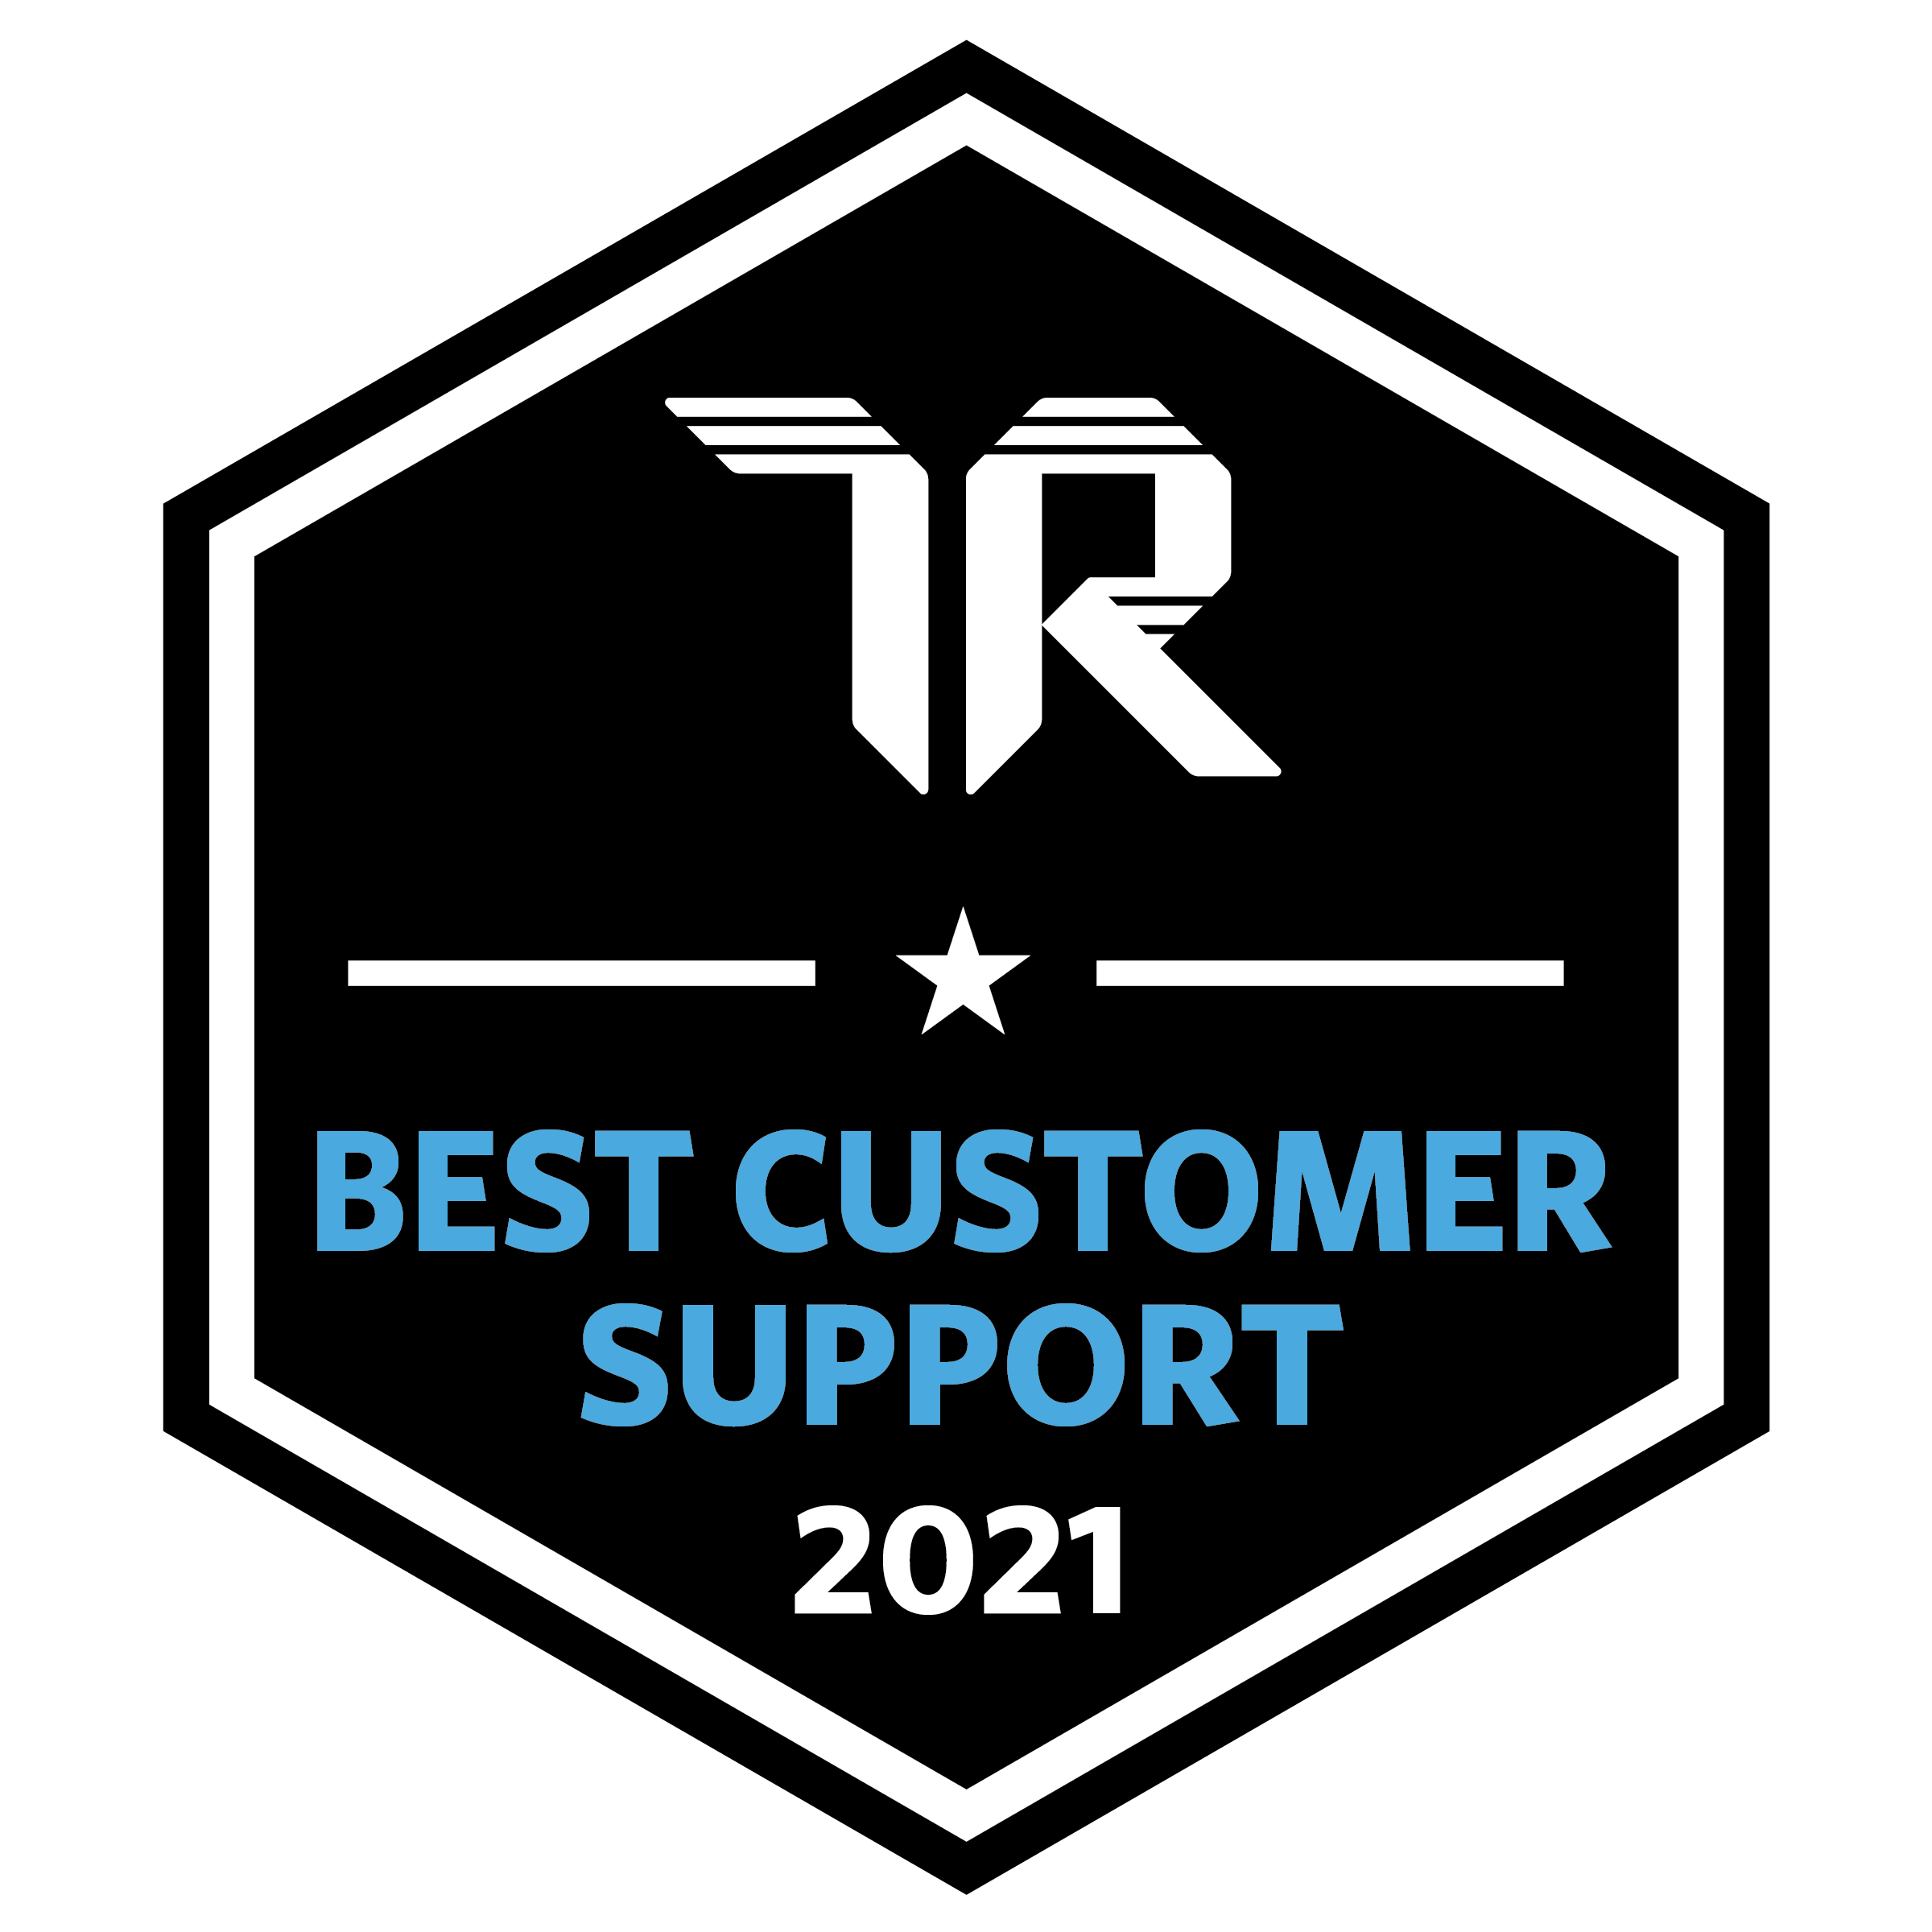 best-customer-support-badge-01-1